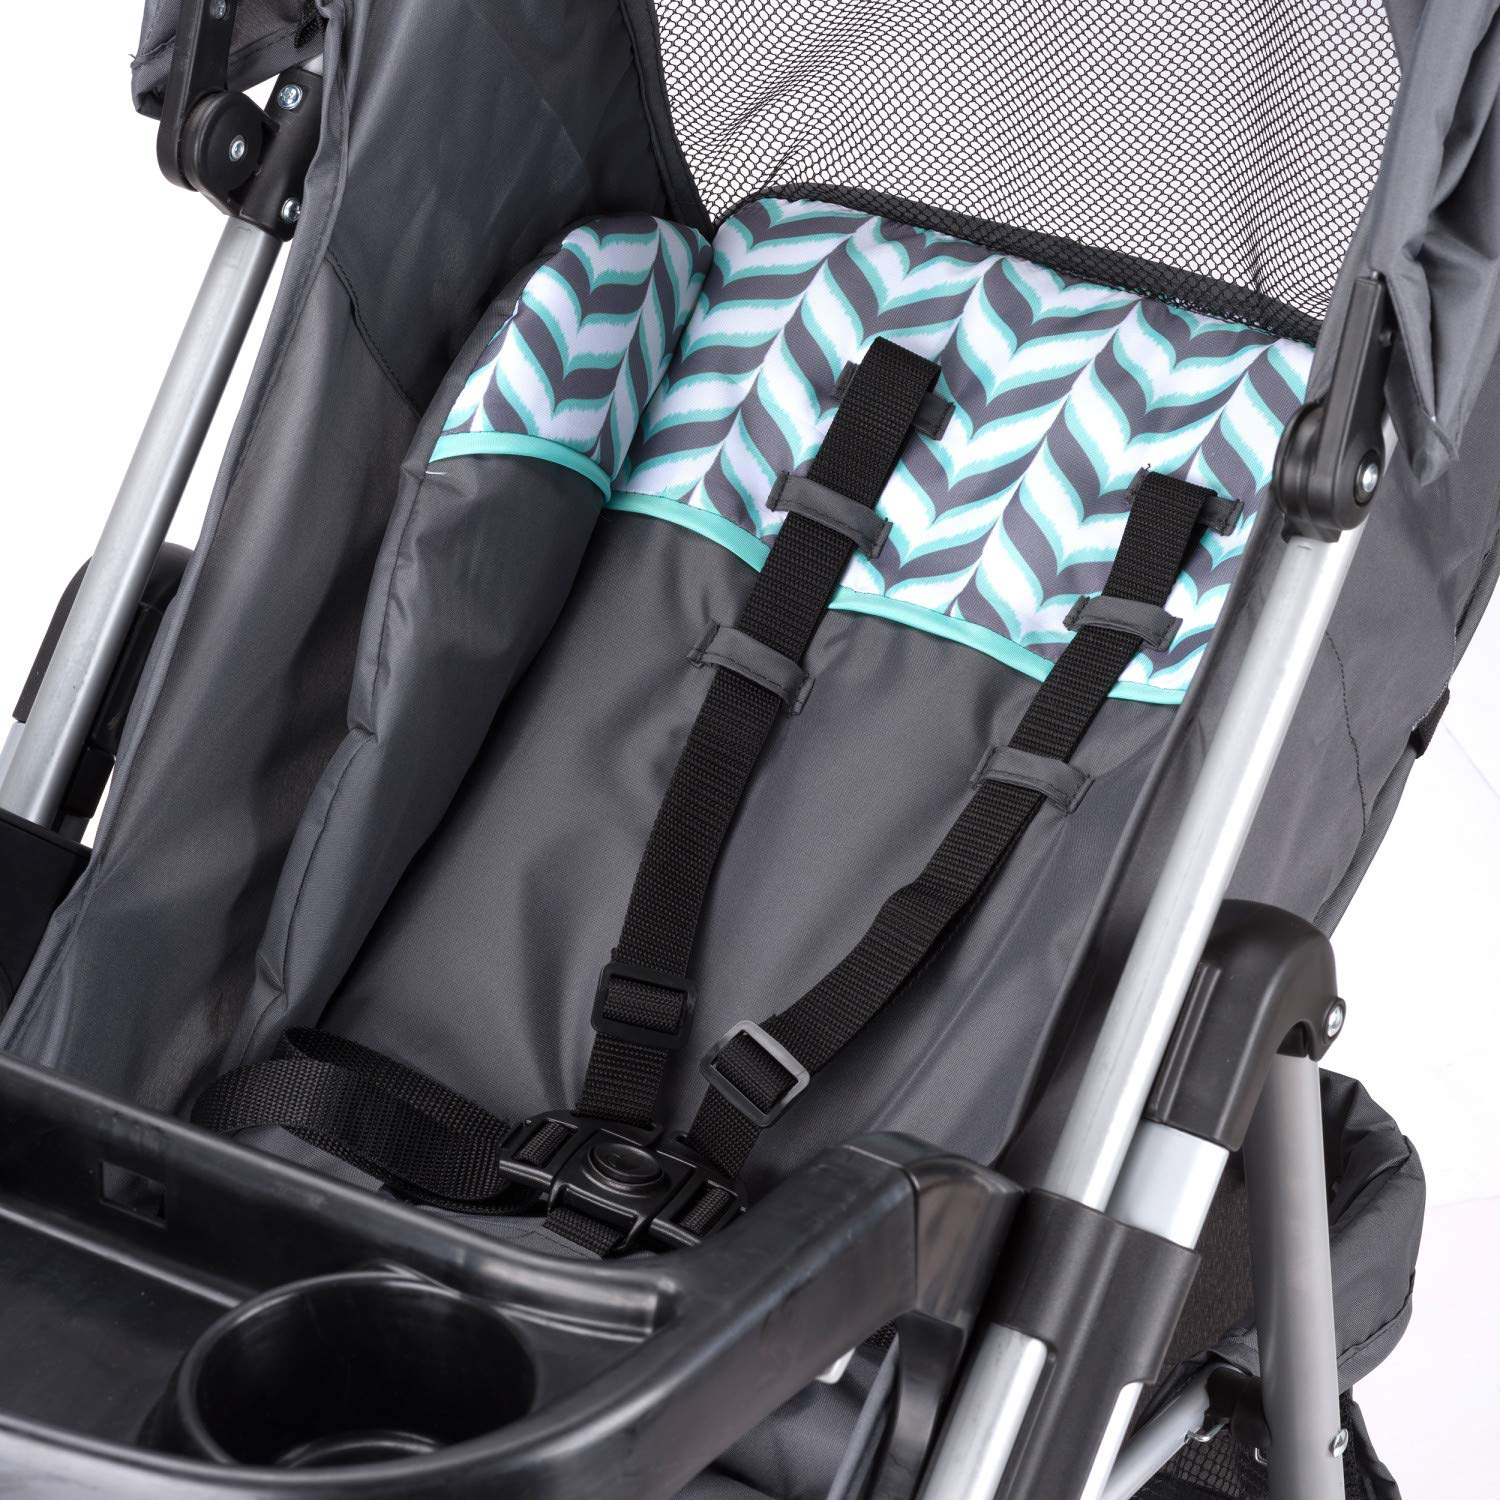 Evenflo Vive Travel System with Embrace Infant Car Seat, Spearmint Spree by Evenflo (Image #8)